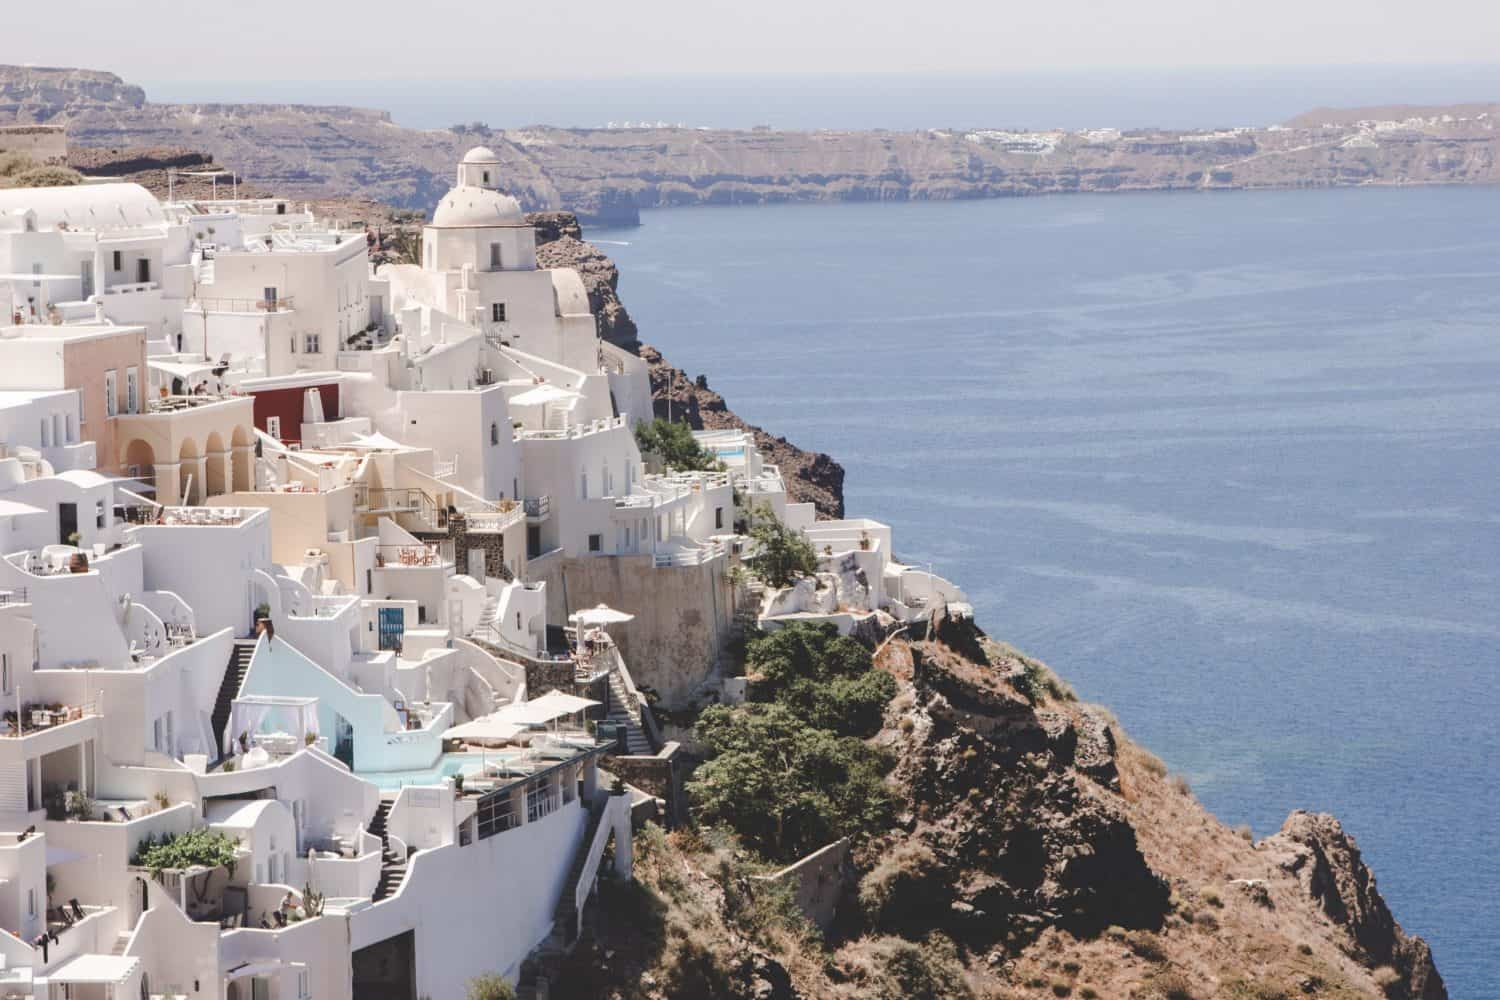 Santorini, Greece overlooking the sea. Here's what you need to know about travel to Santorini!